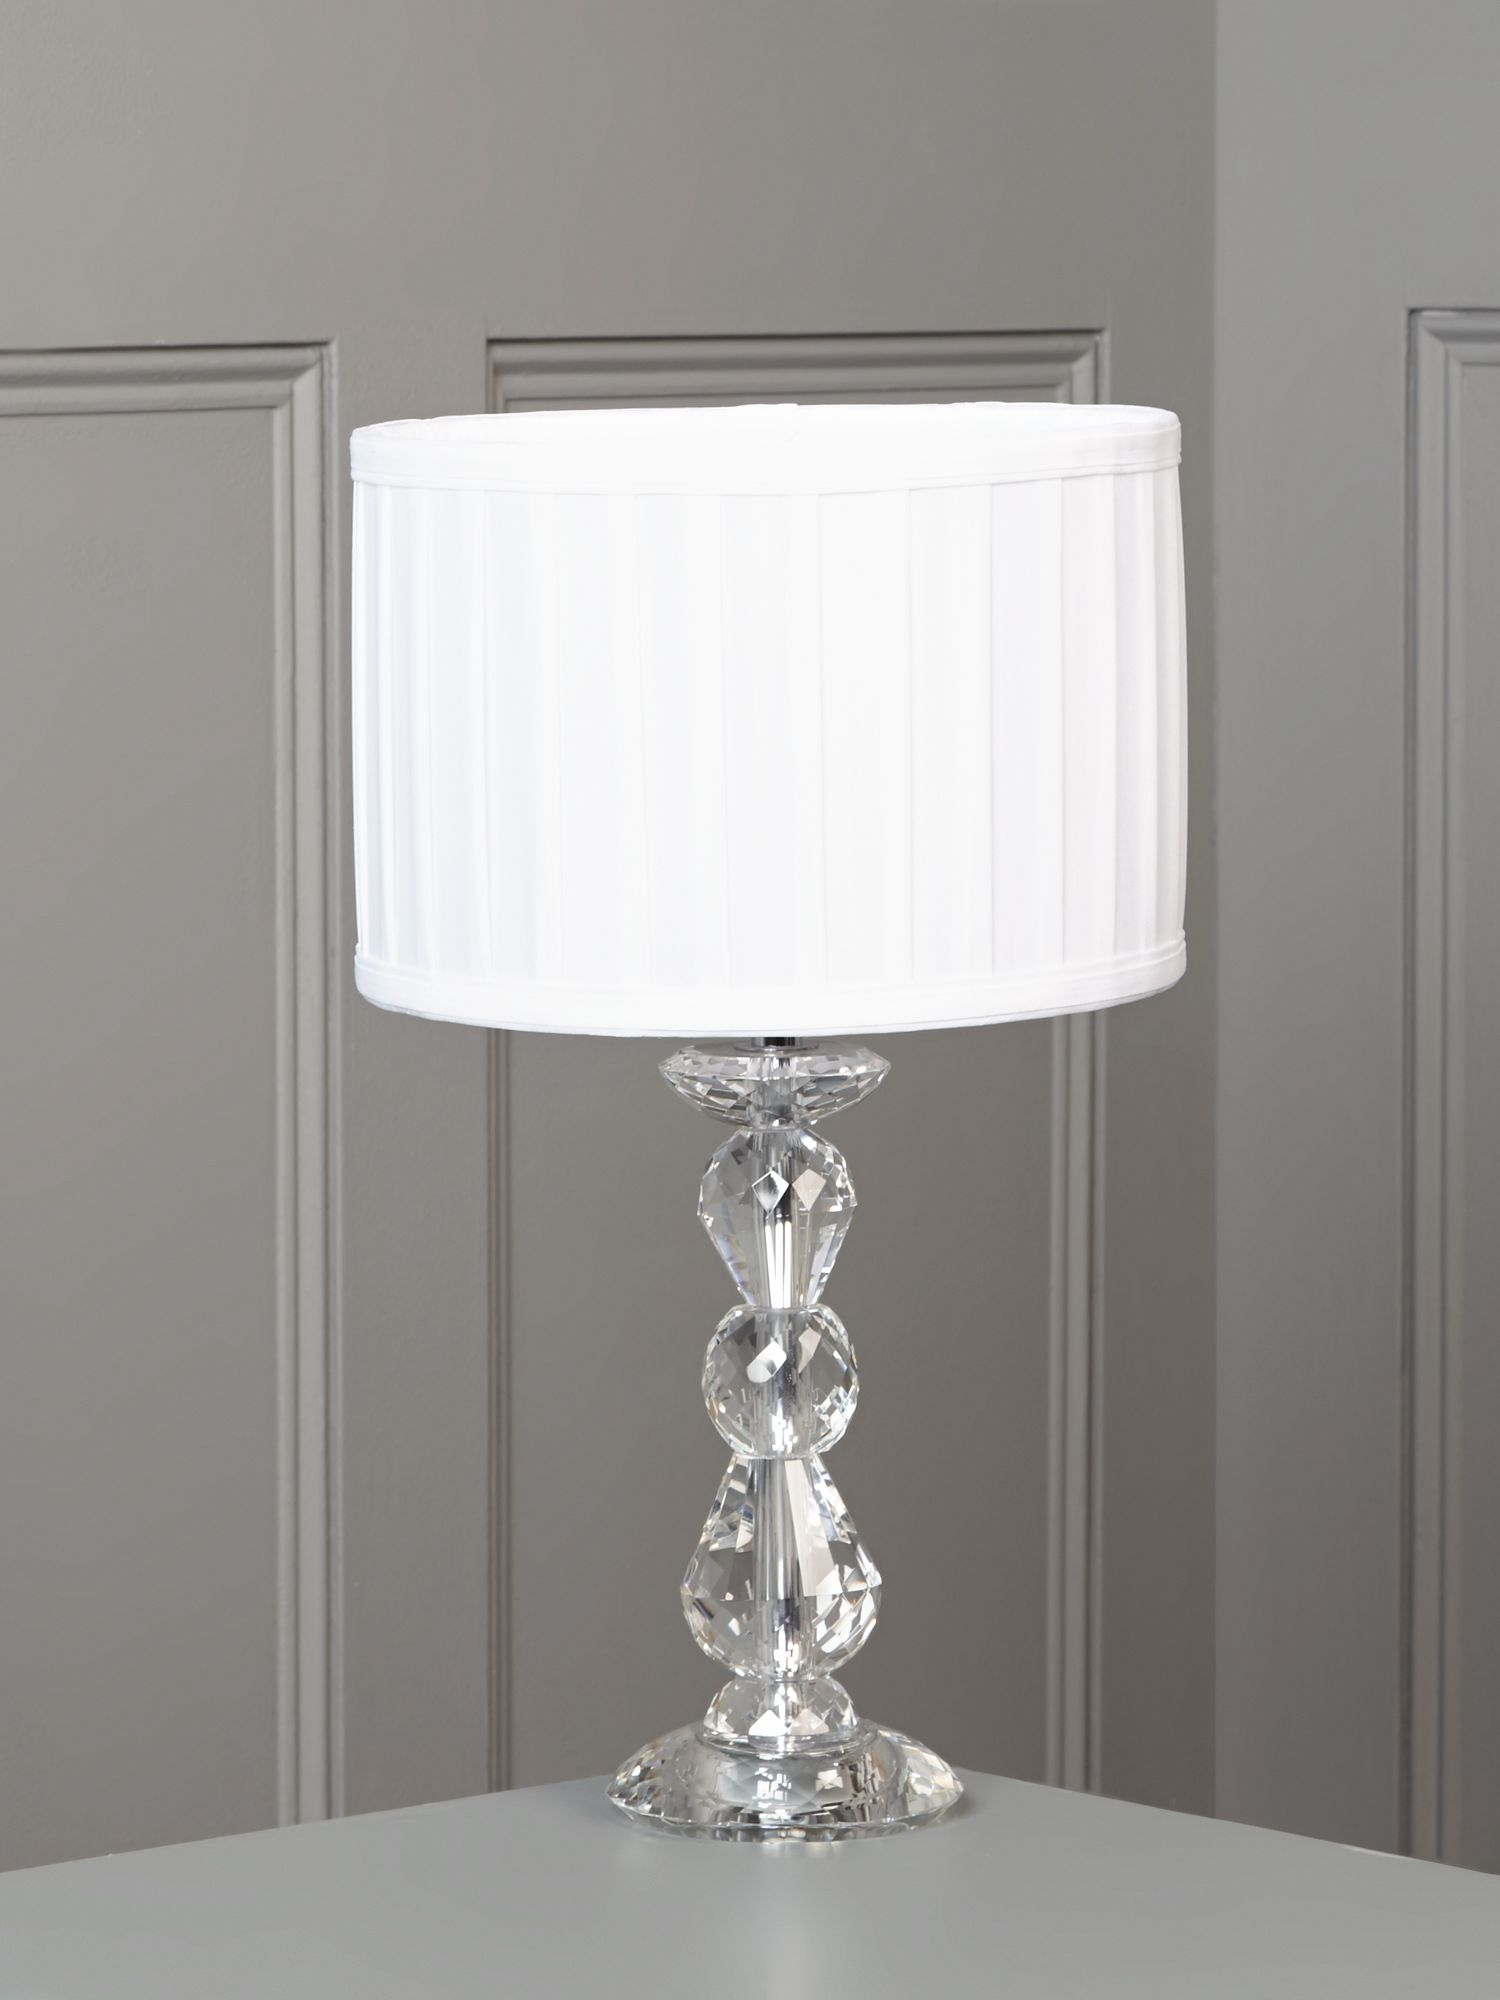 Clarence crystal table lamp - white